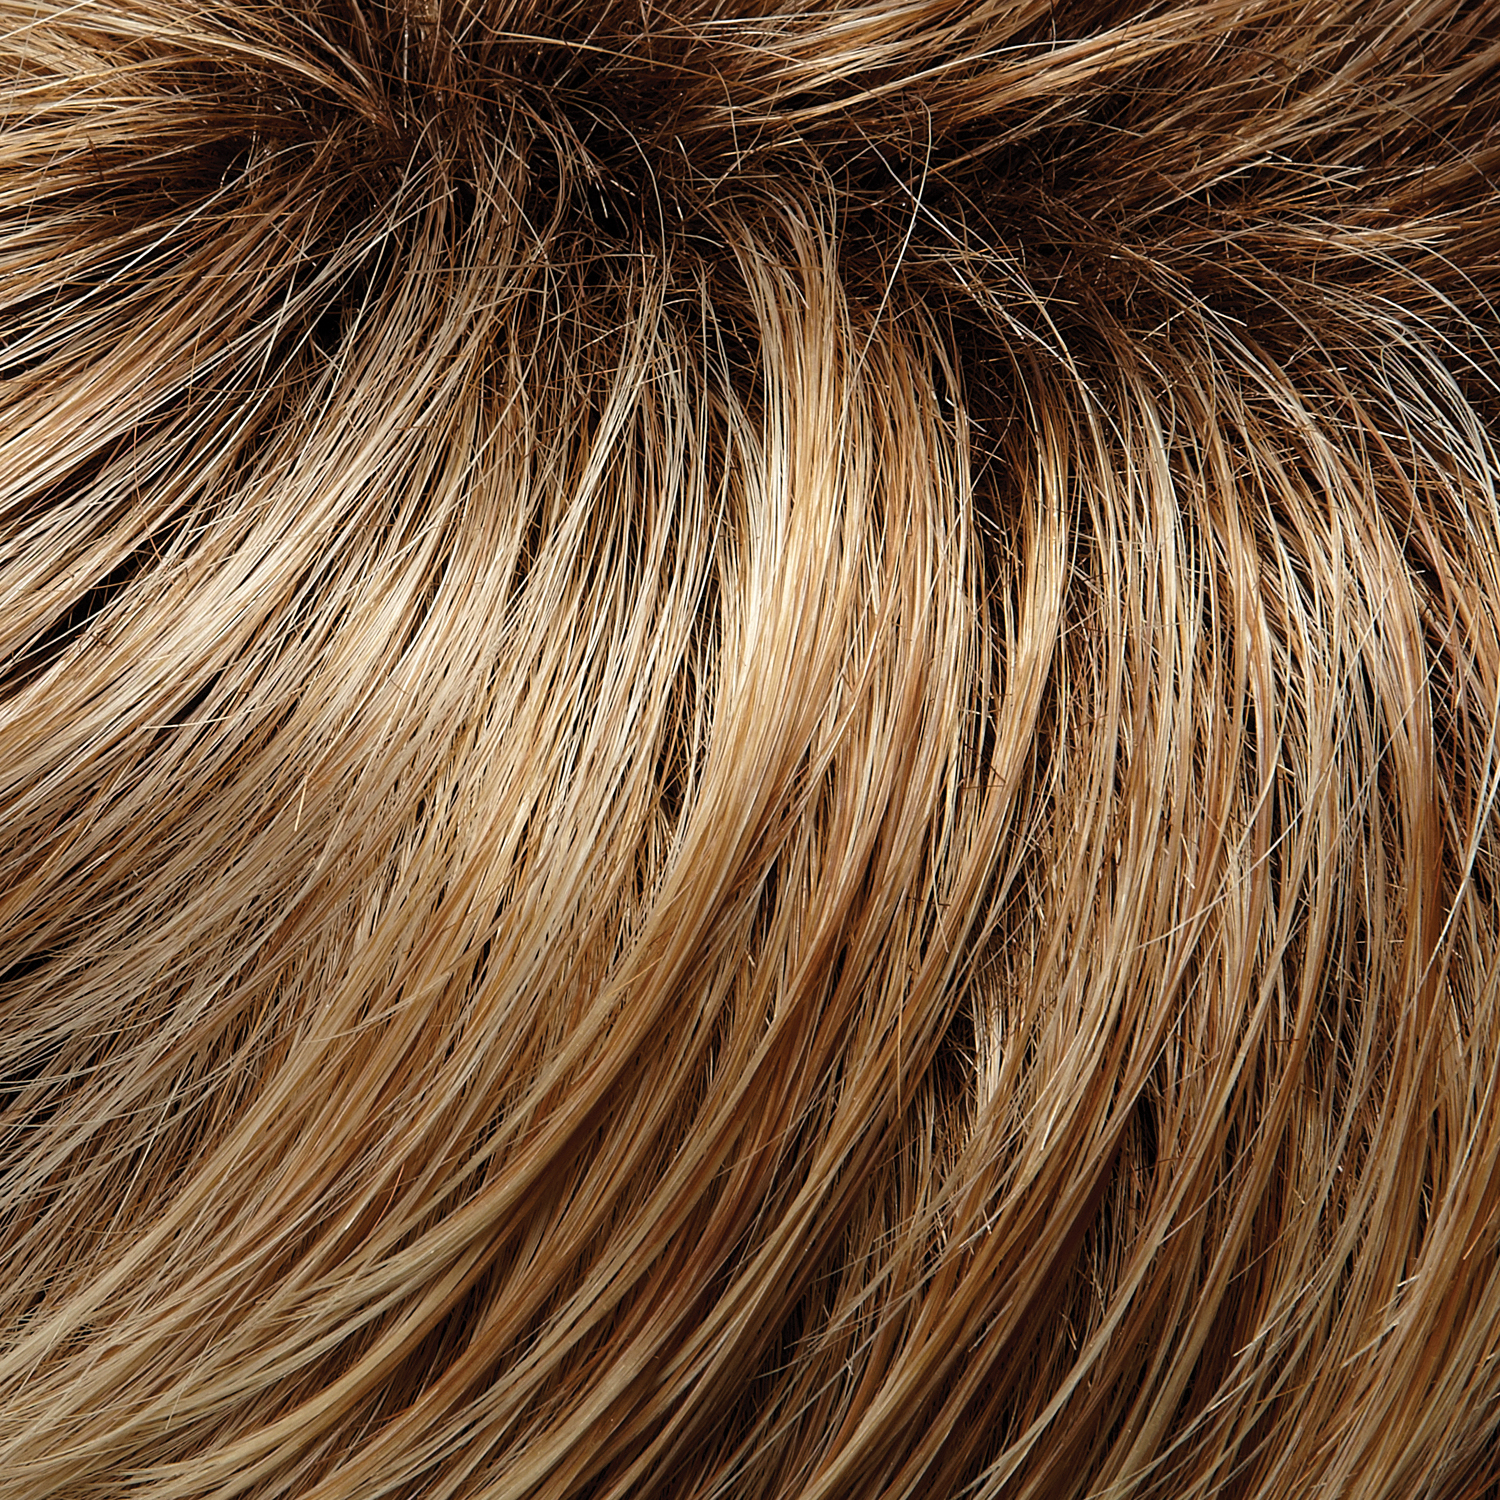 27T613S8 - Medium Natural Red-Golden Blonde & Pale Natural Gold Blonde Blend with Tips & Shaded Medium Brown Root